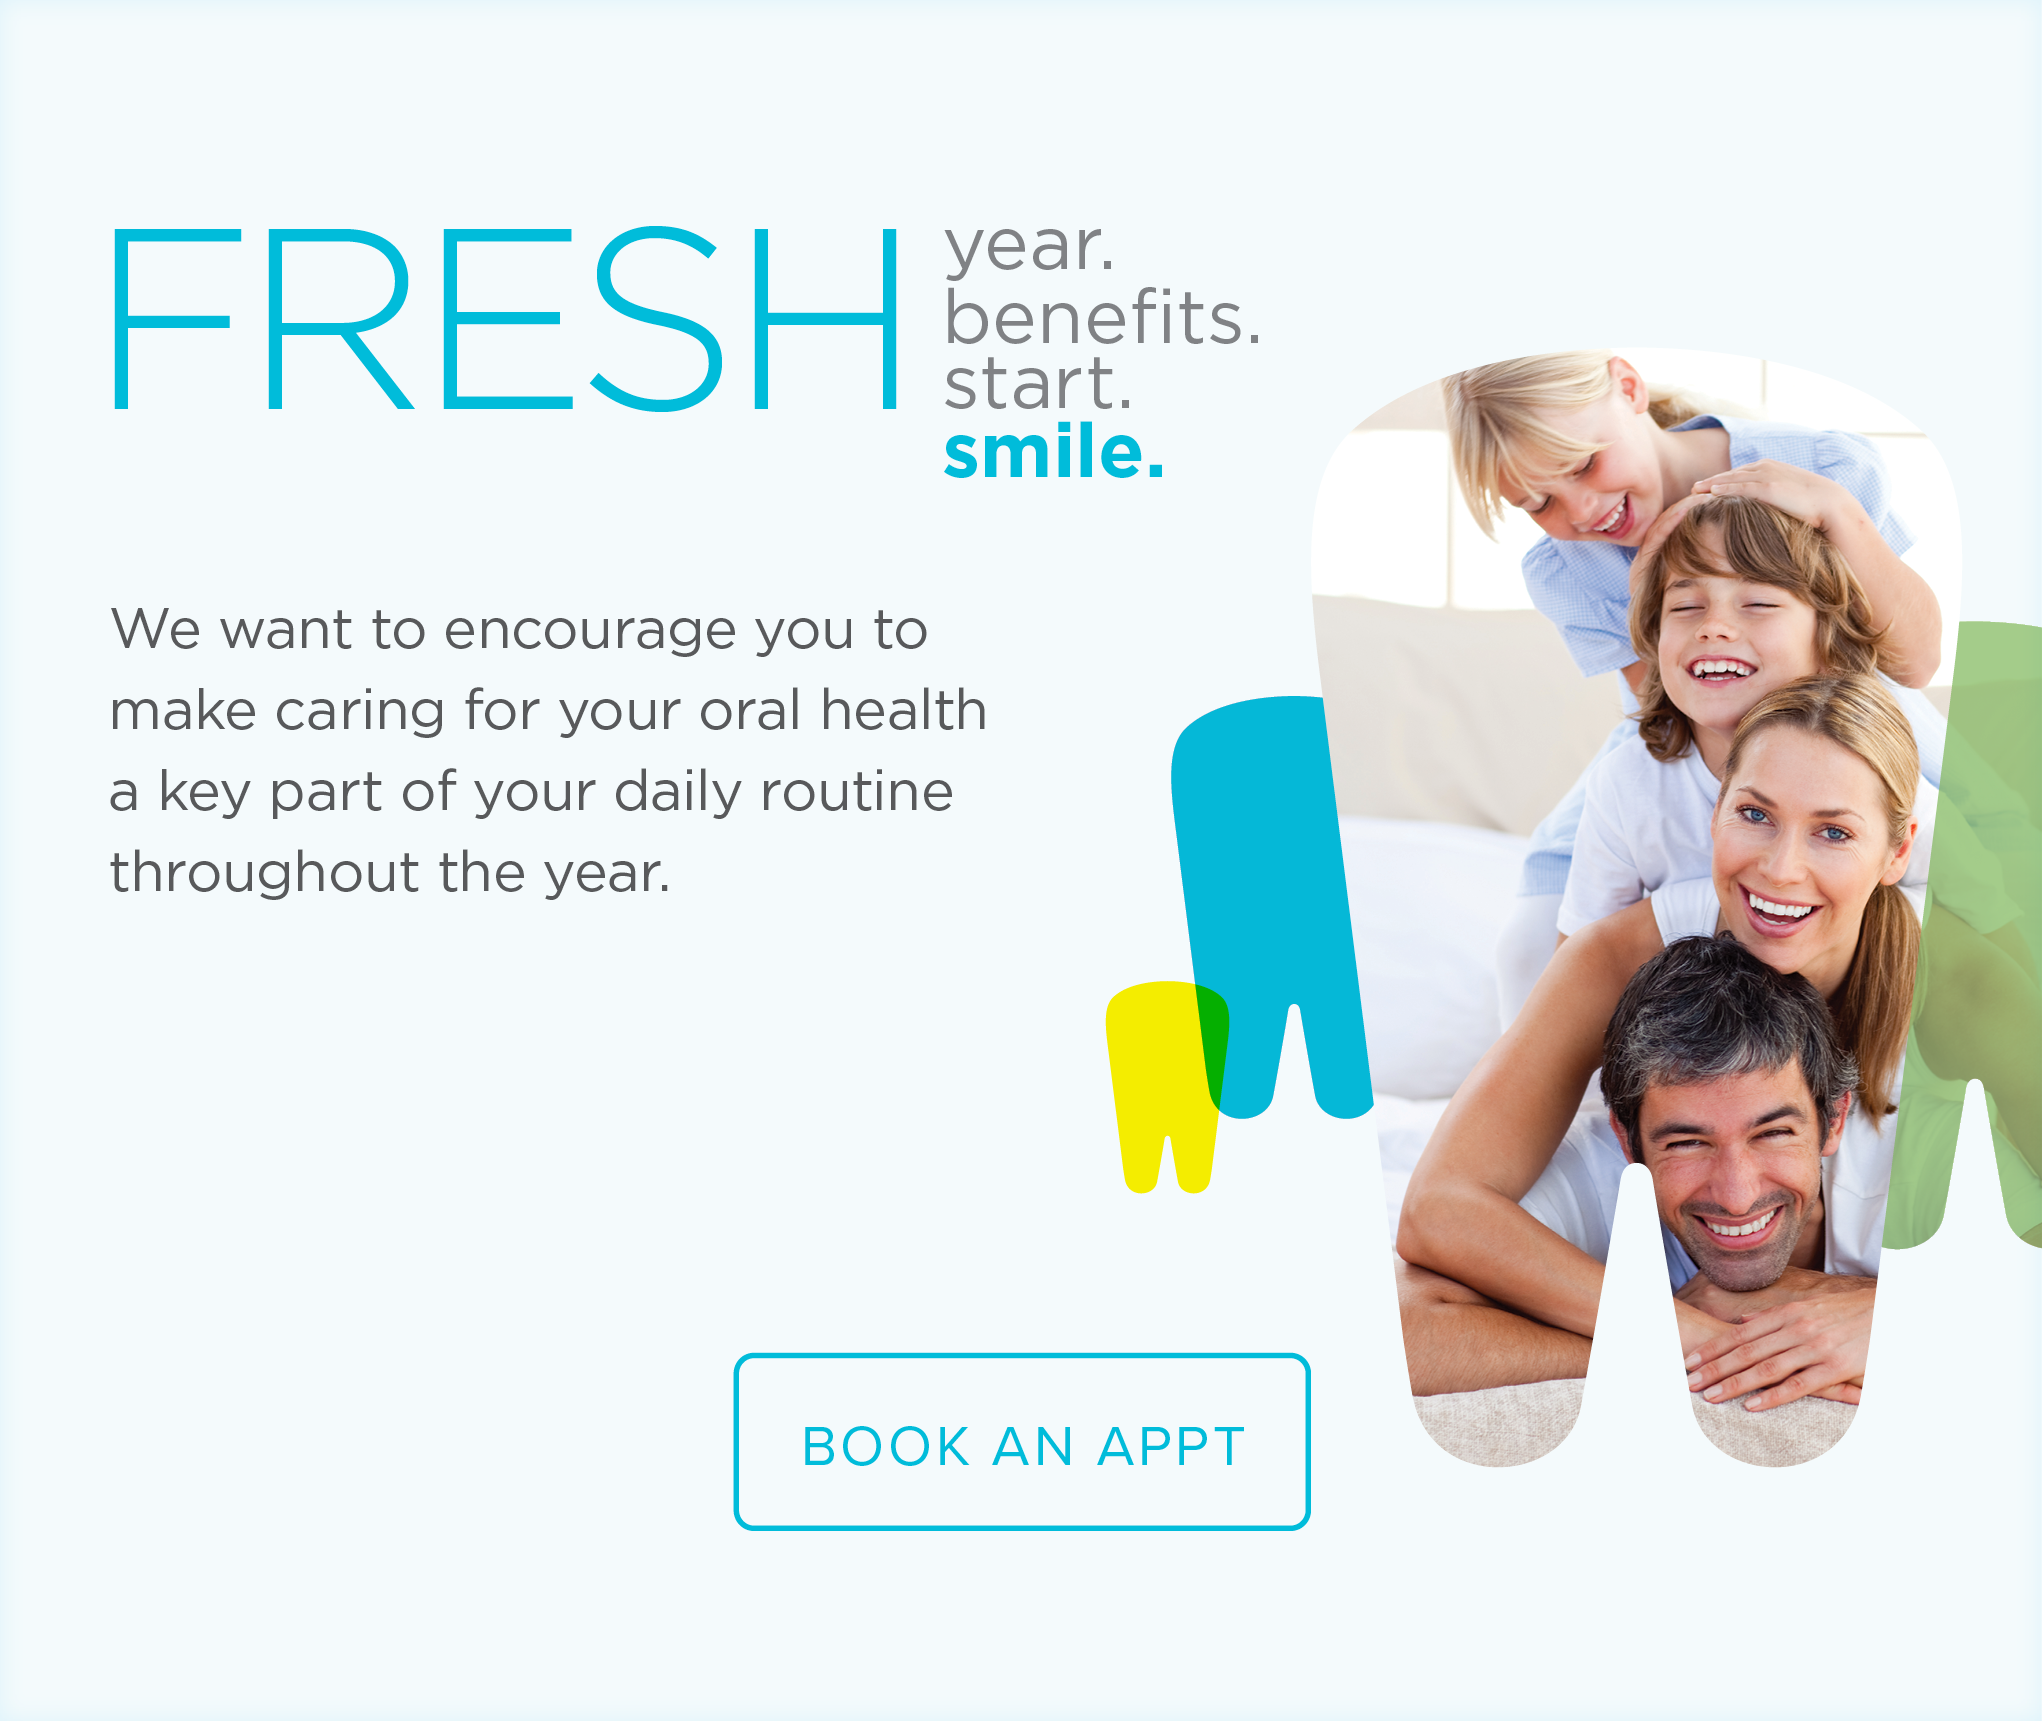 La Mesa Modern Dental Group - Make the Most of Your Benefits